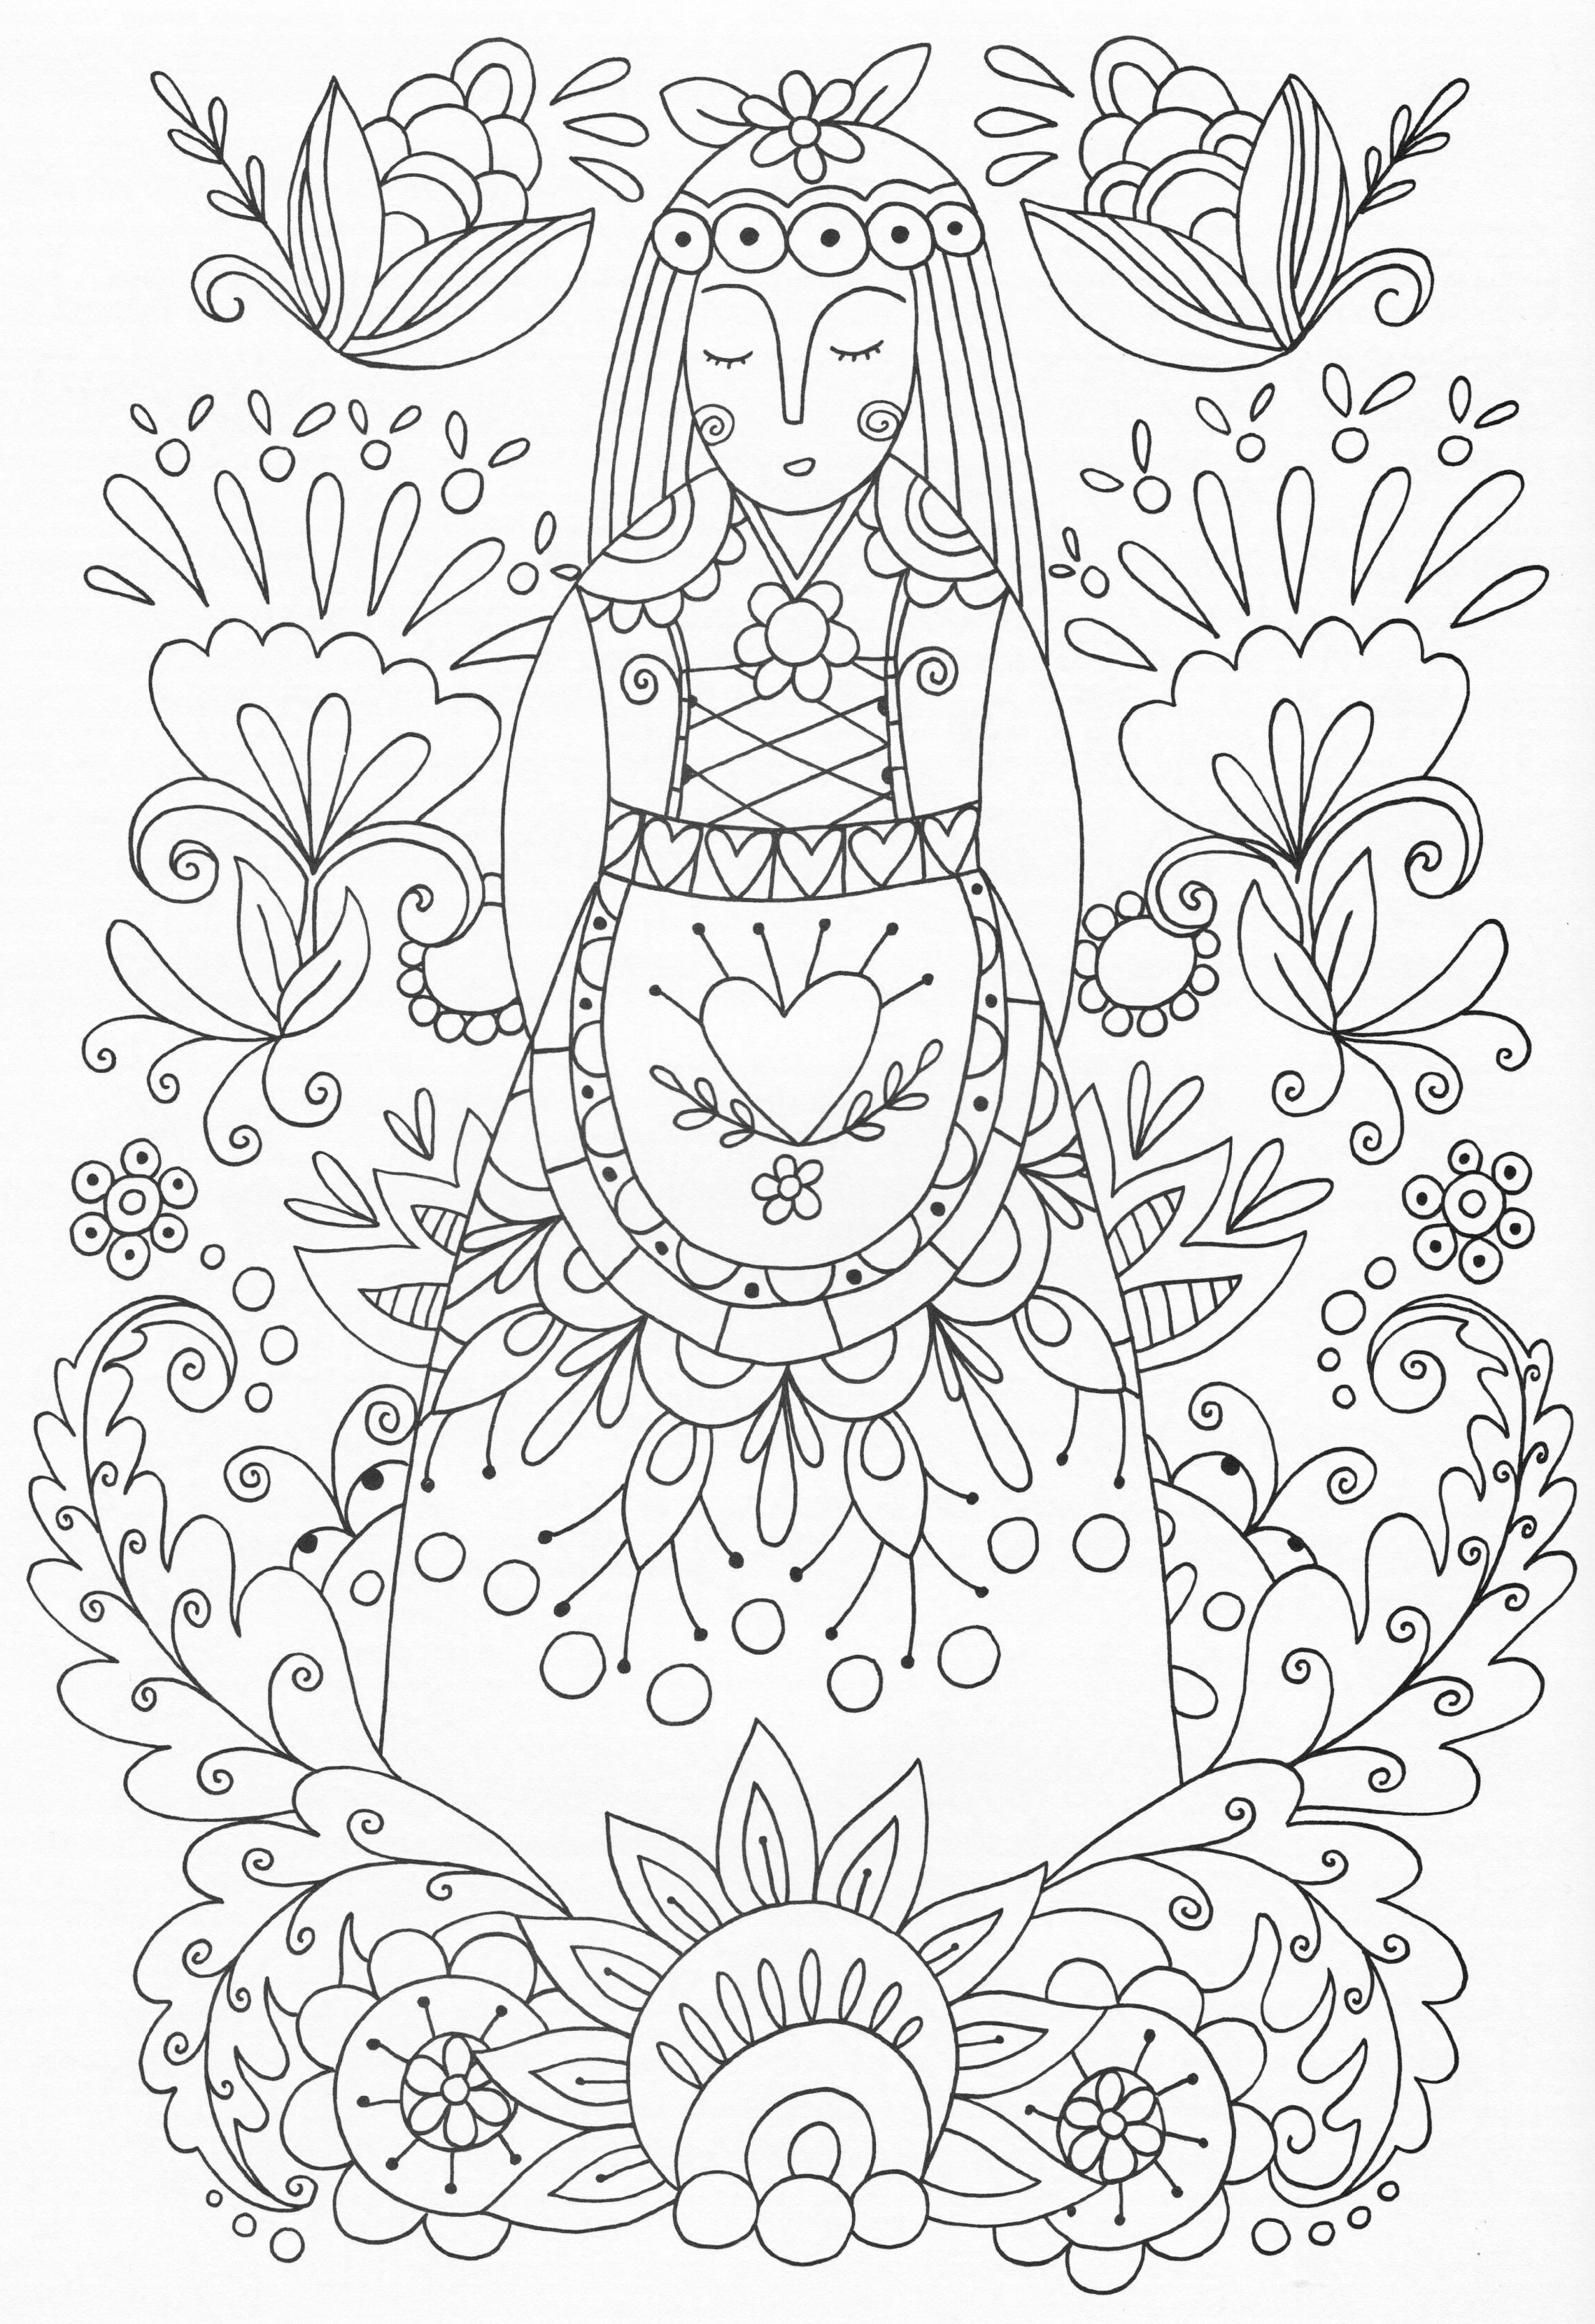 Scandinavian Coloring Book Pg 53 | coloring | Bordado, Colores y ...